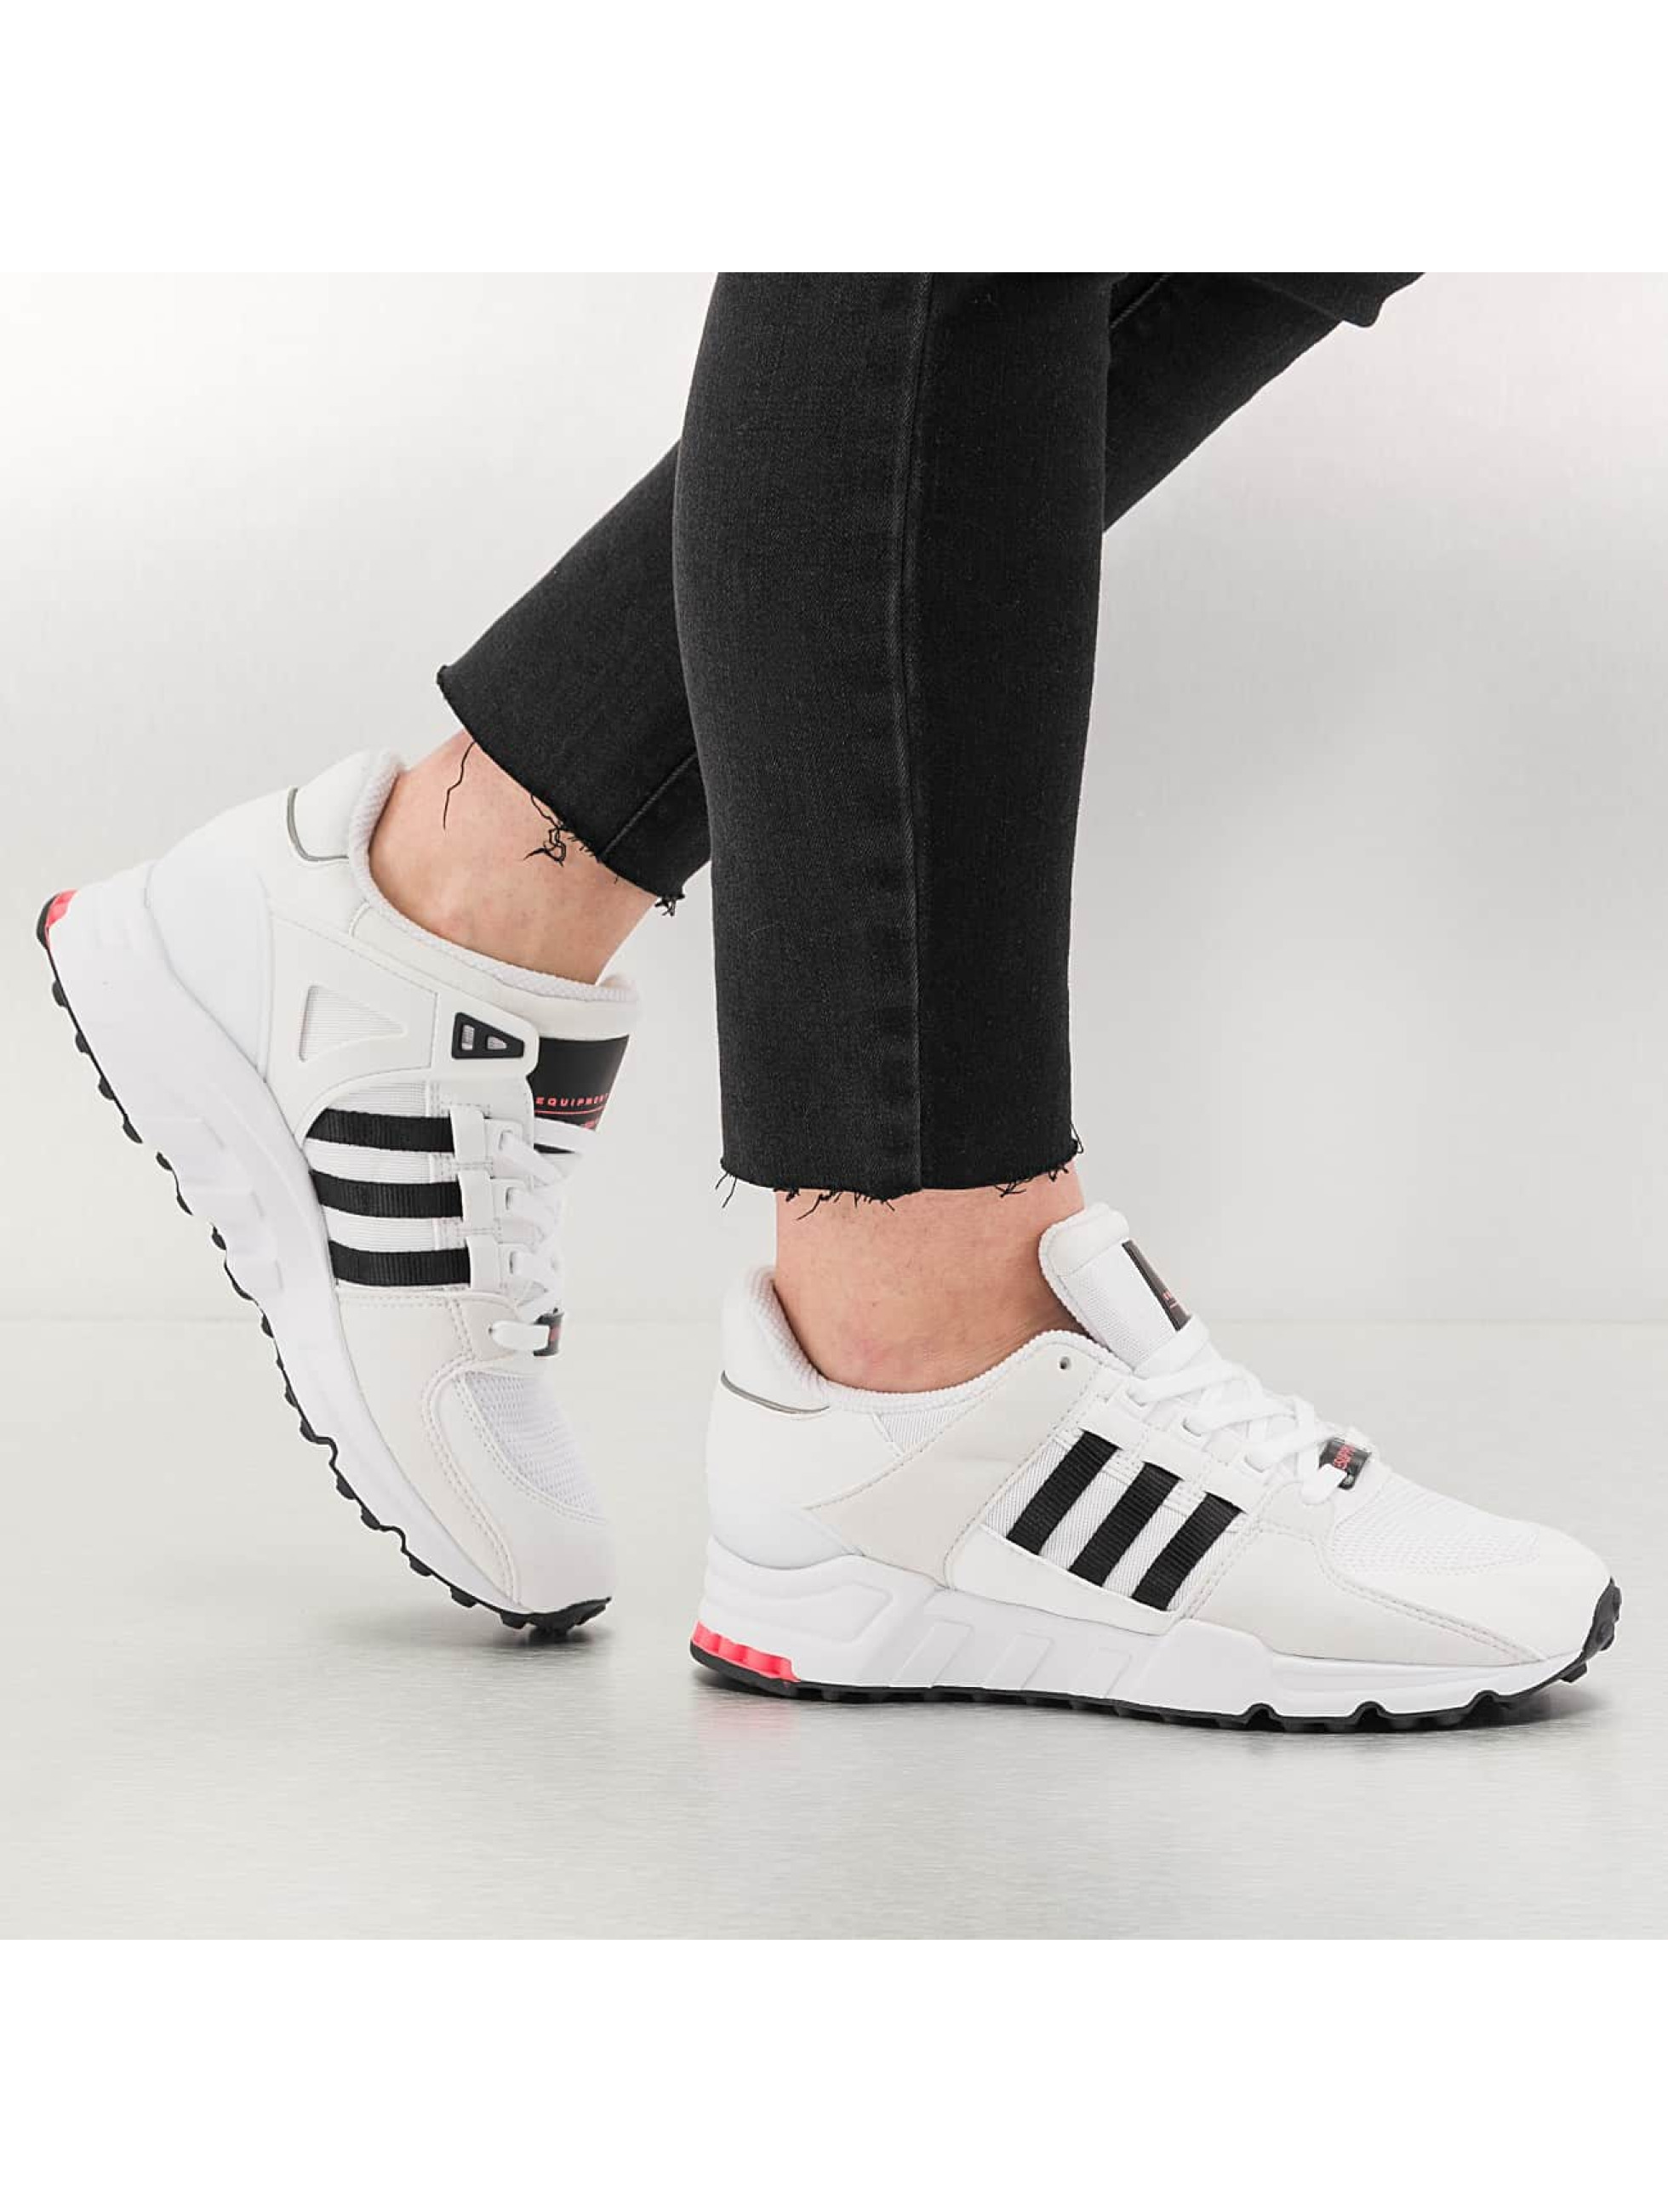 adidas Sneakers Equipment Support J white